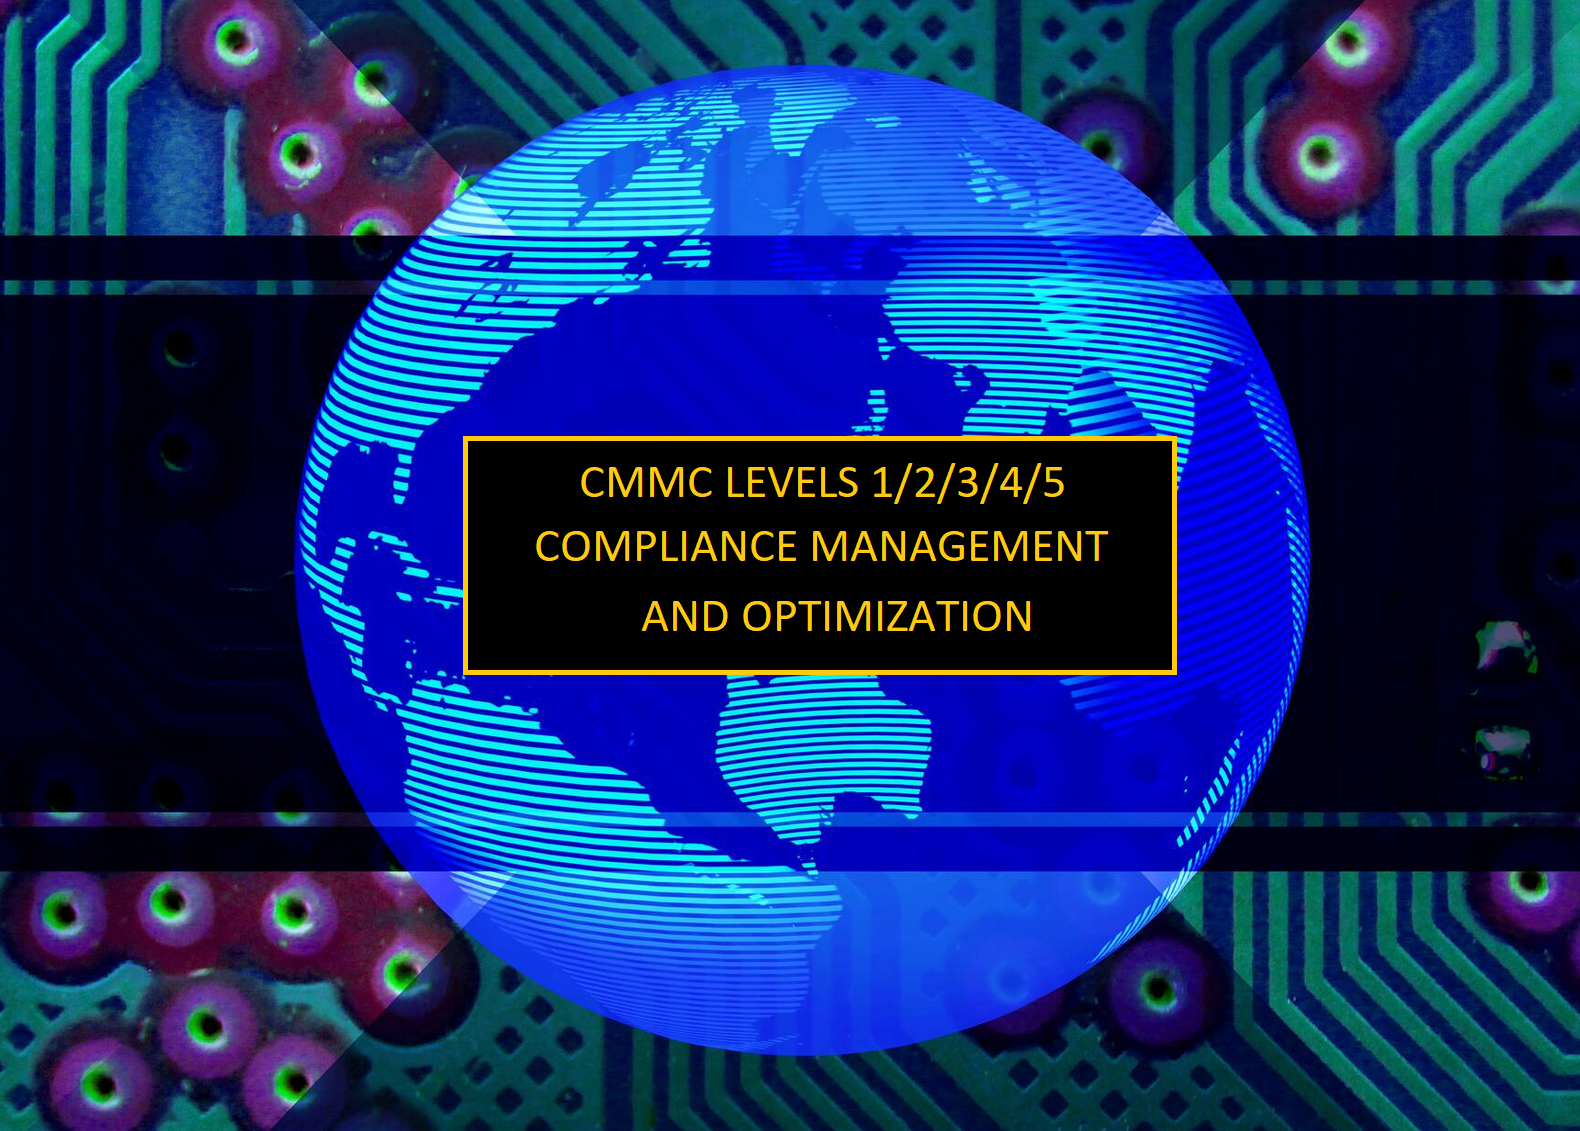 ReadyCert supports your company with any level of cyber maturity